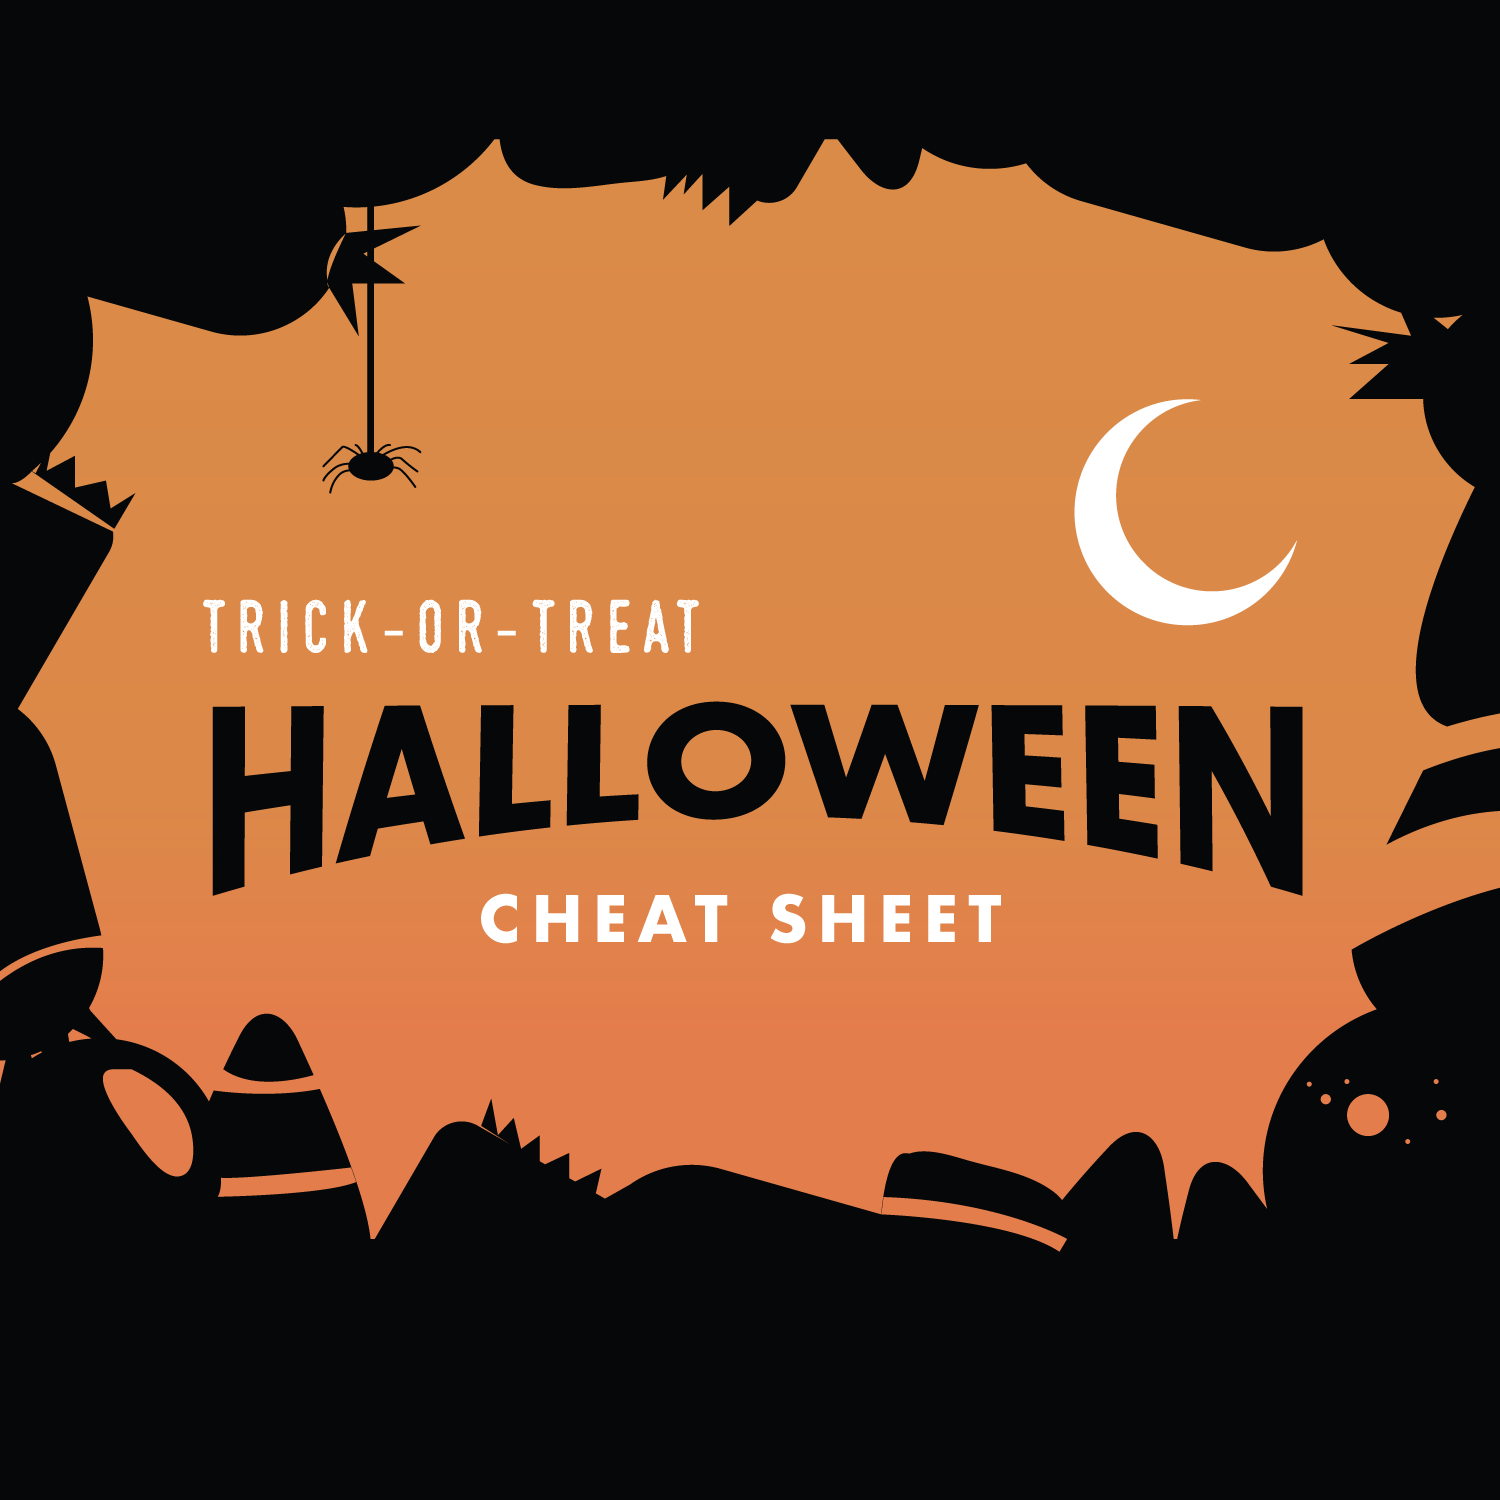 Check out our Halloween safety infographic!